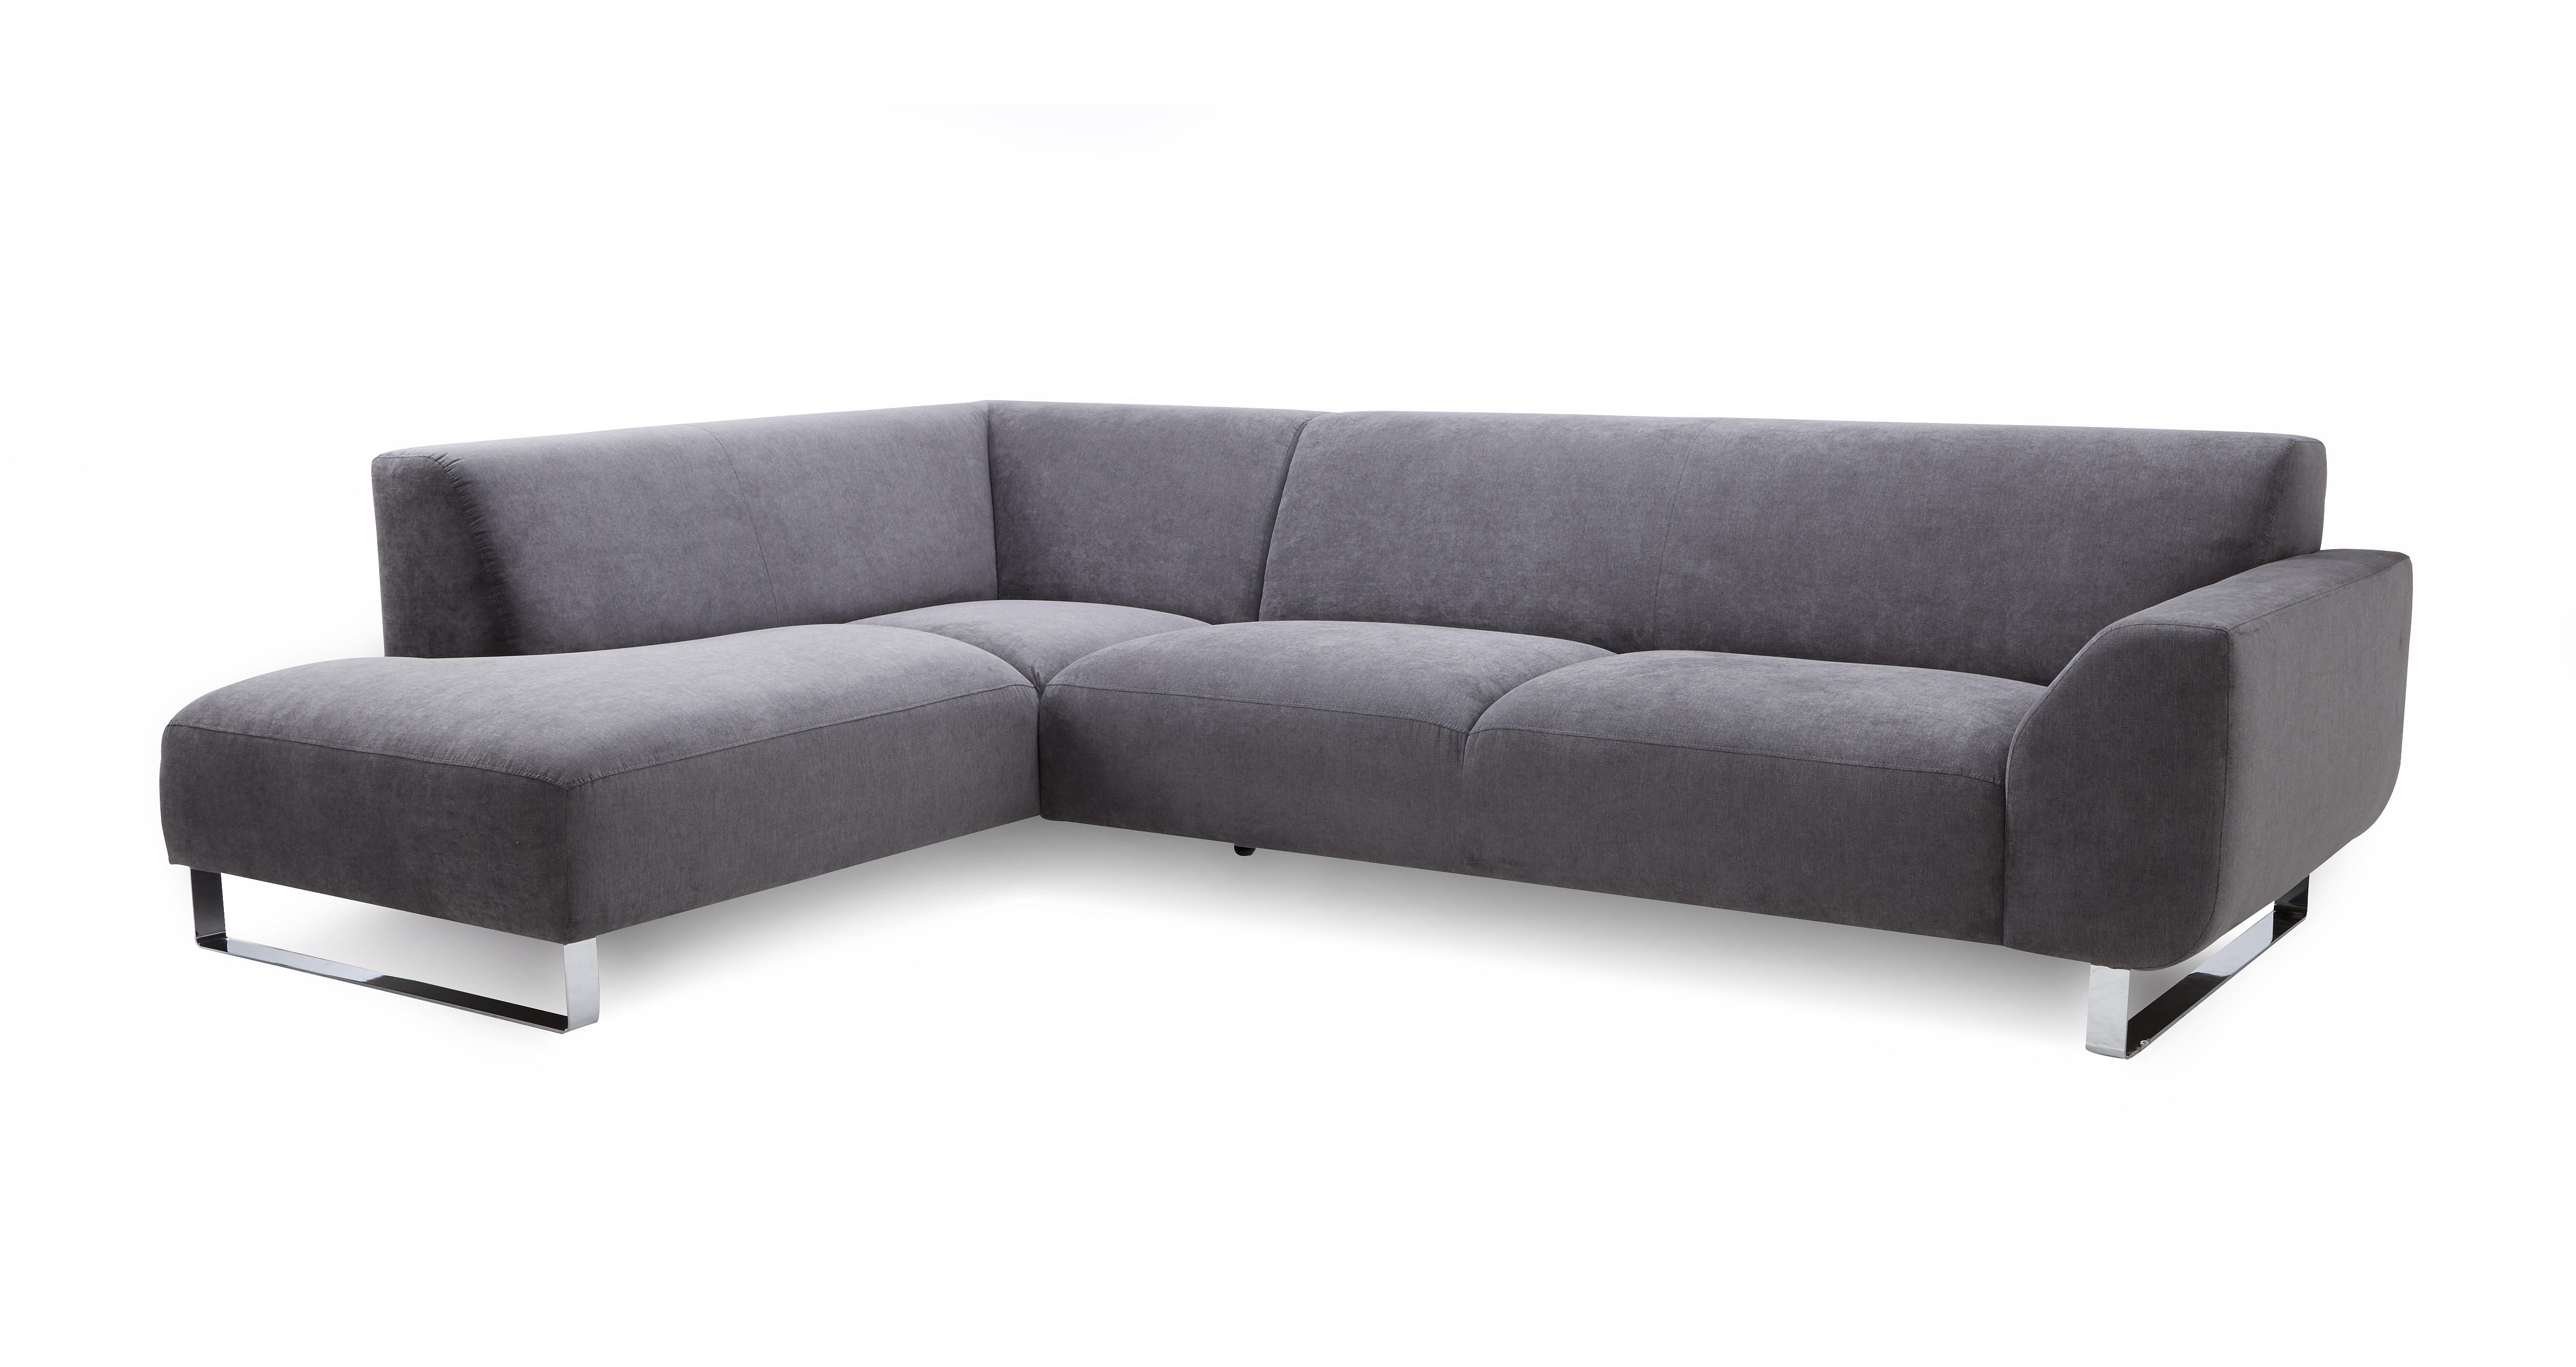 Hardy Right Hand Facing Arm Corner Sofa Plaza Dfs